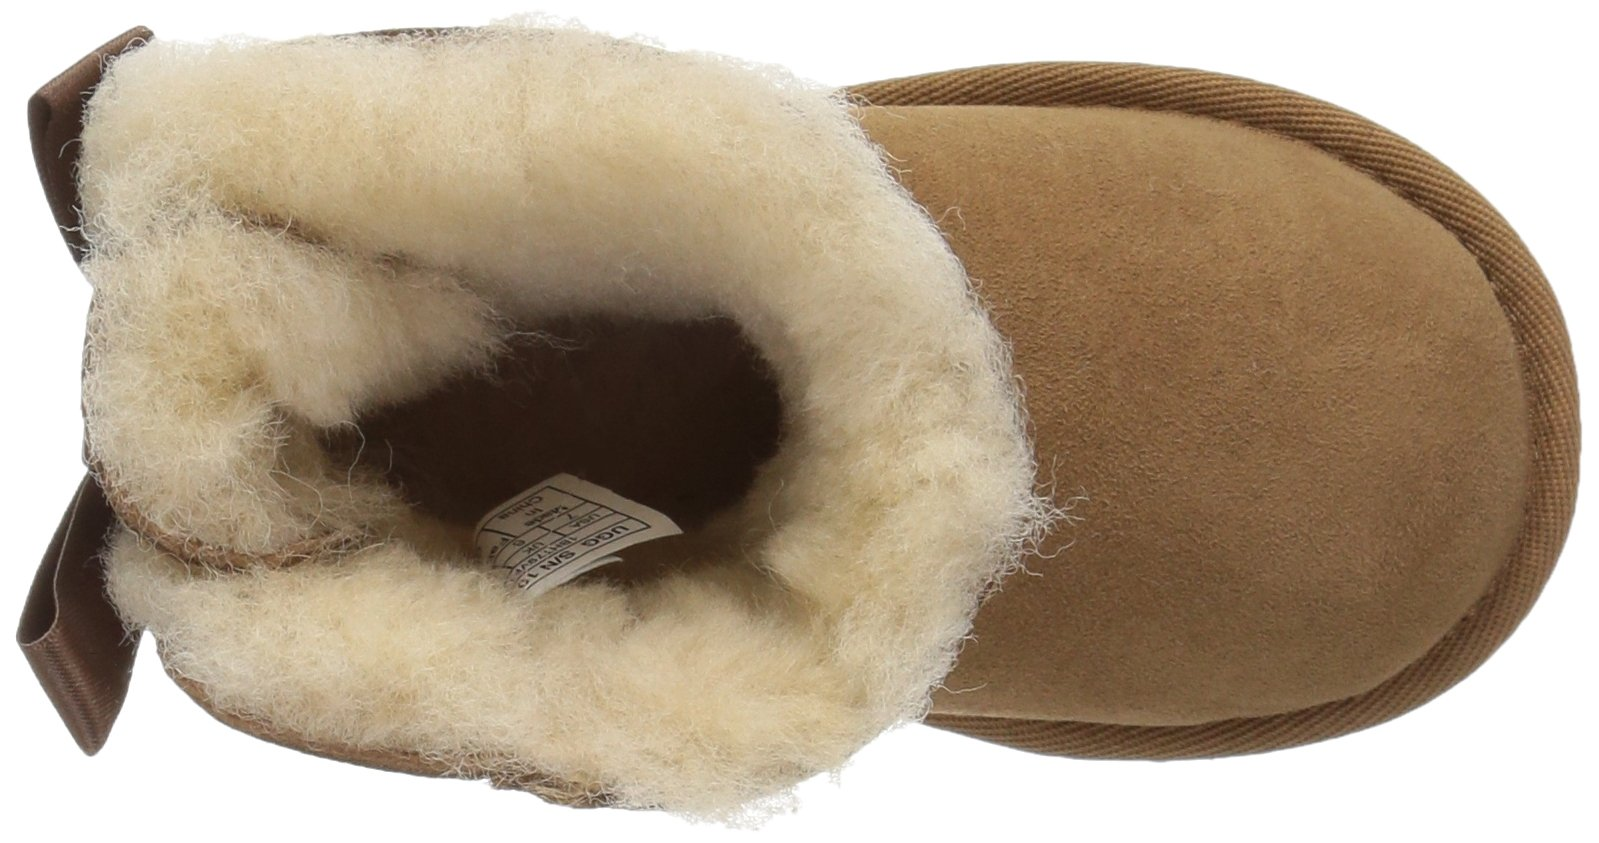 UGG Girls T Mini Bailey Bow II Pull-on Boot, Chestnut, 12 M US Little Kid by UGG (Image #8)